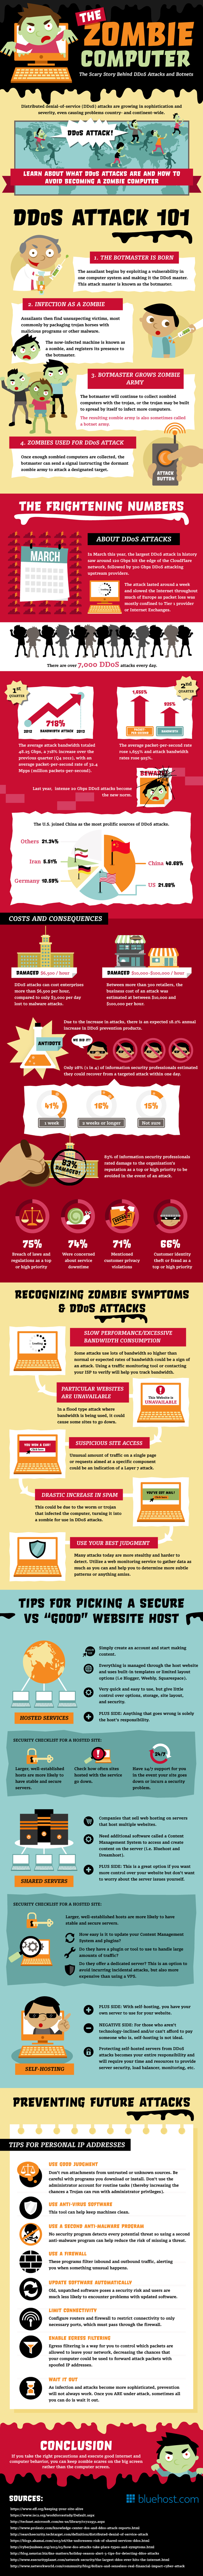 the-zombie-computer-the-scary-story-behind-ddos-attacks-and-botnets-infographic